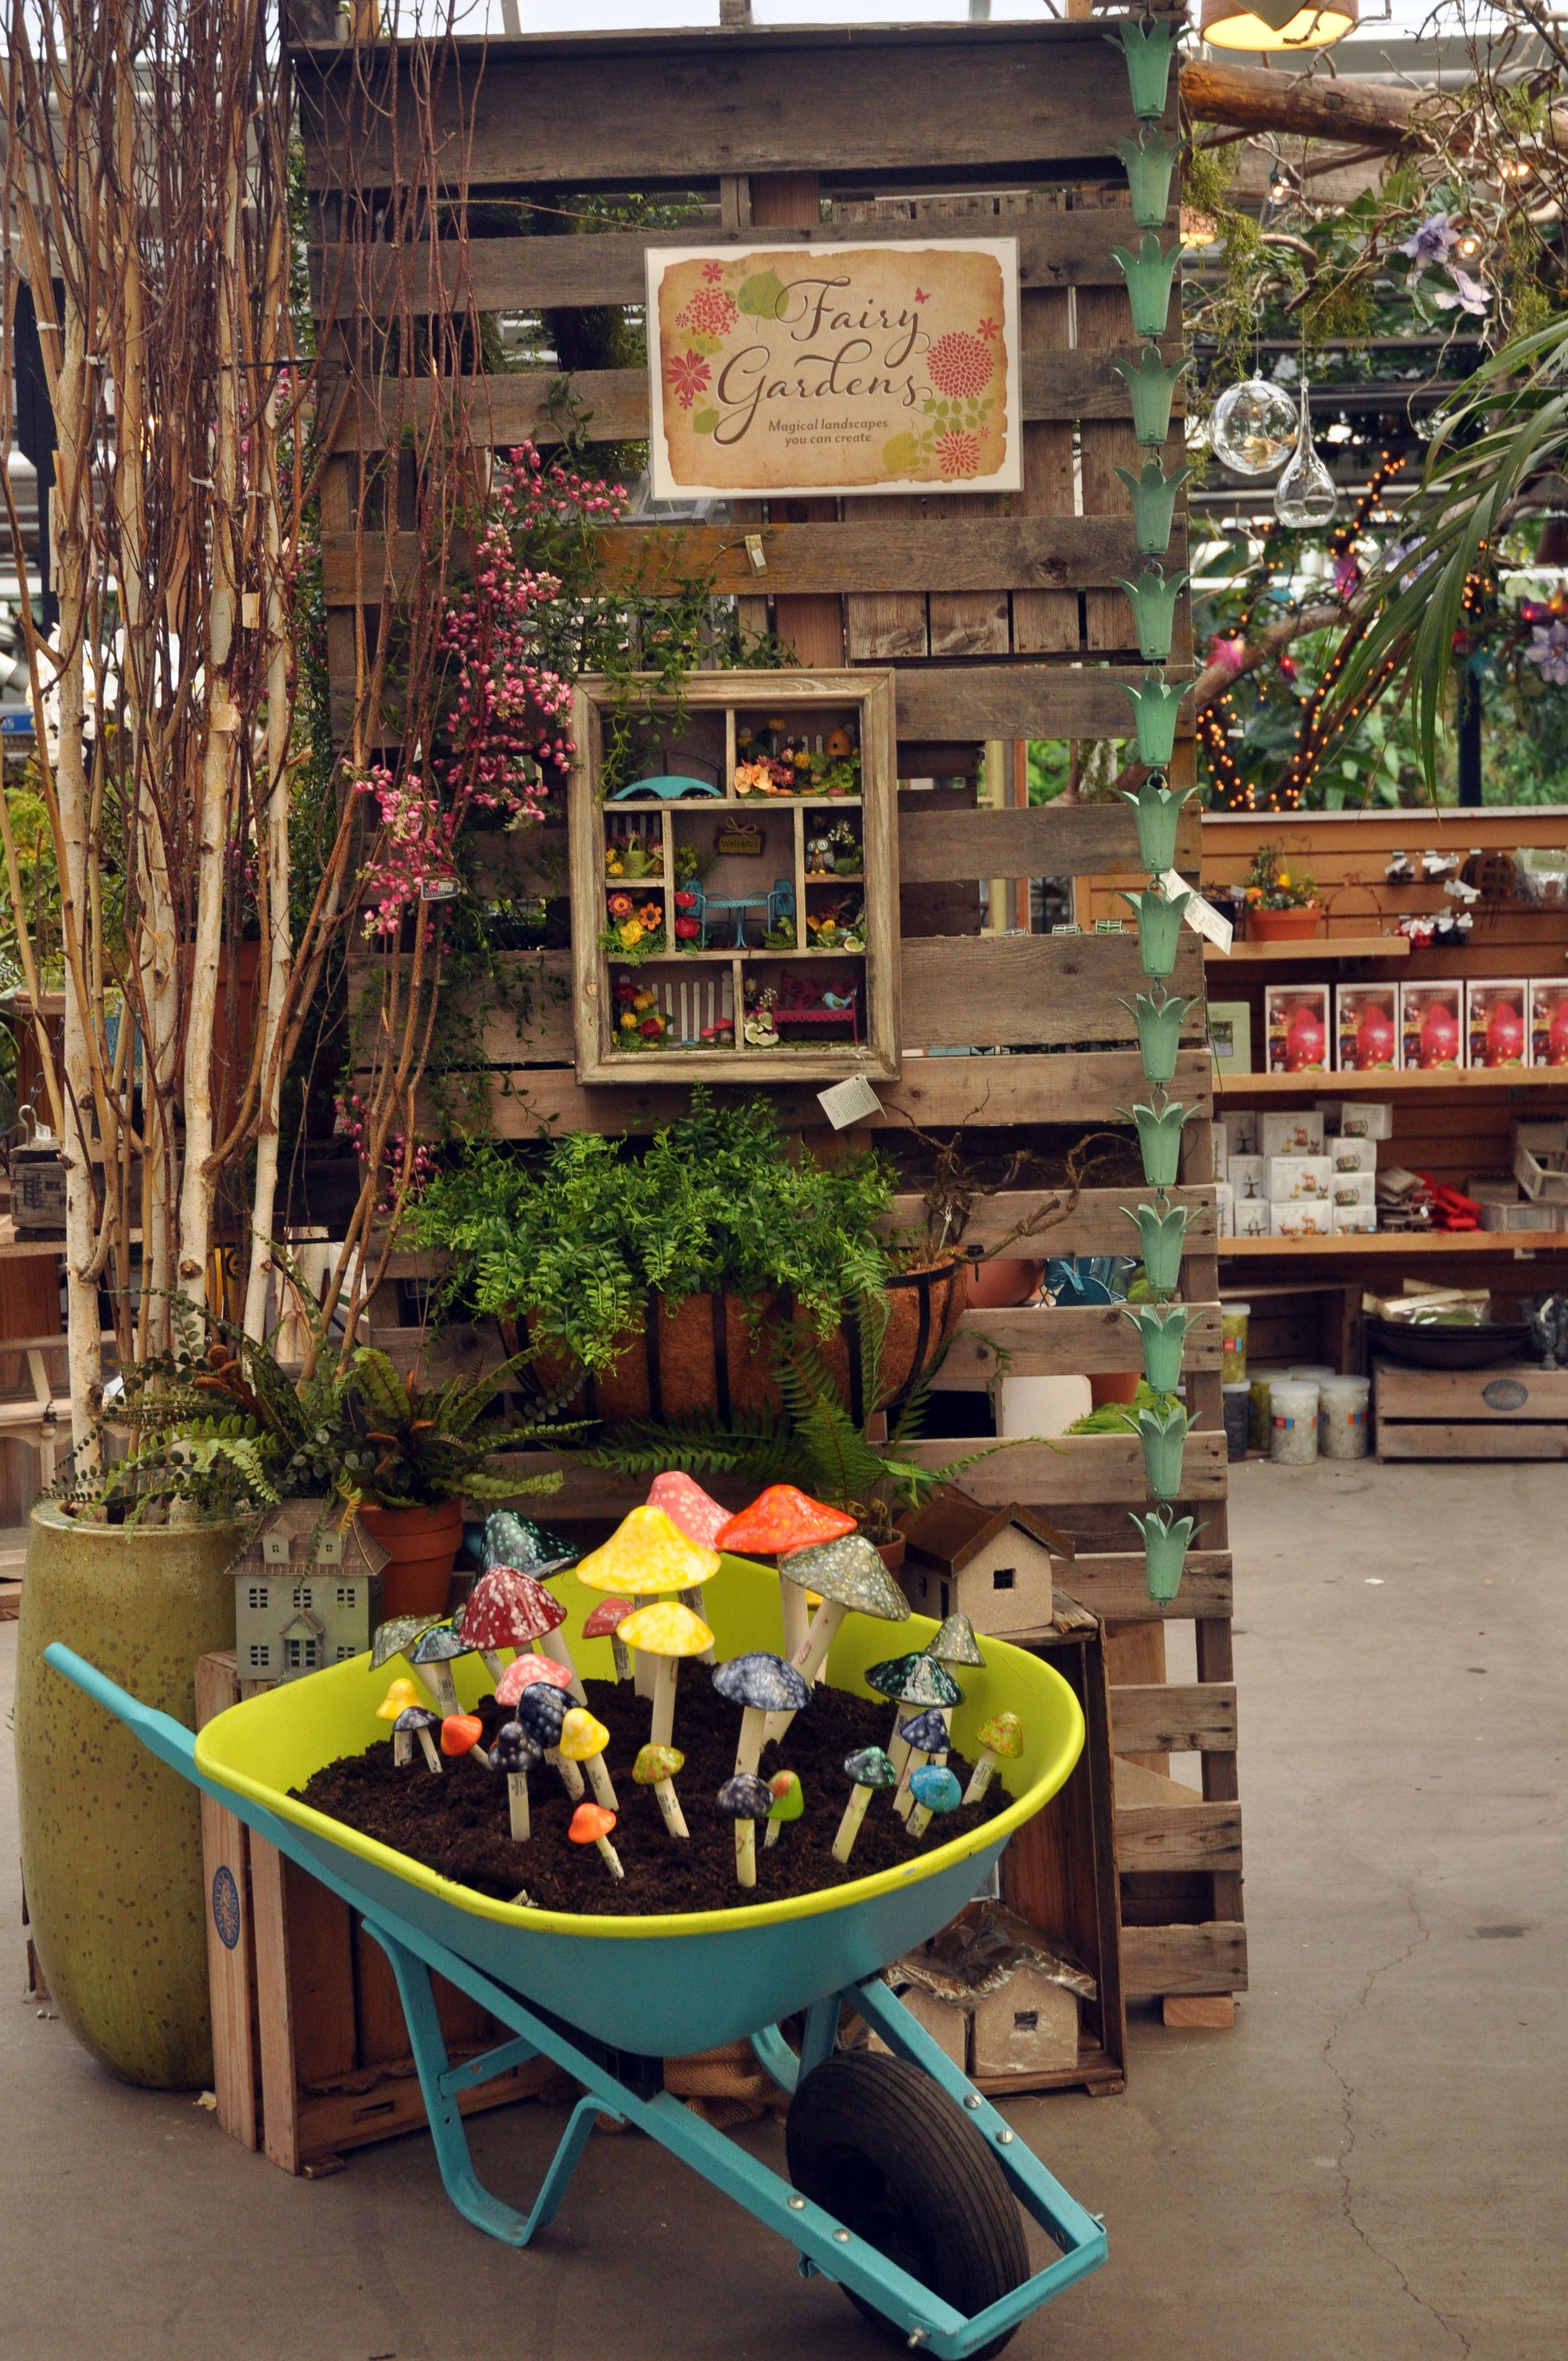 Fairy Garden Display At Molbak's Made From Old Pallets Fairy